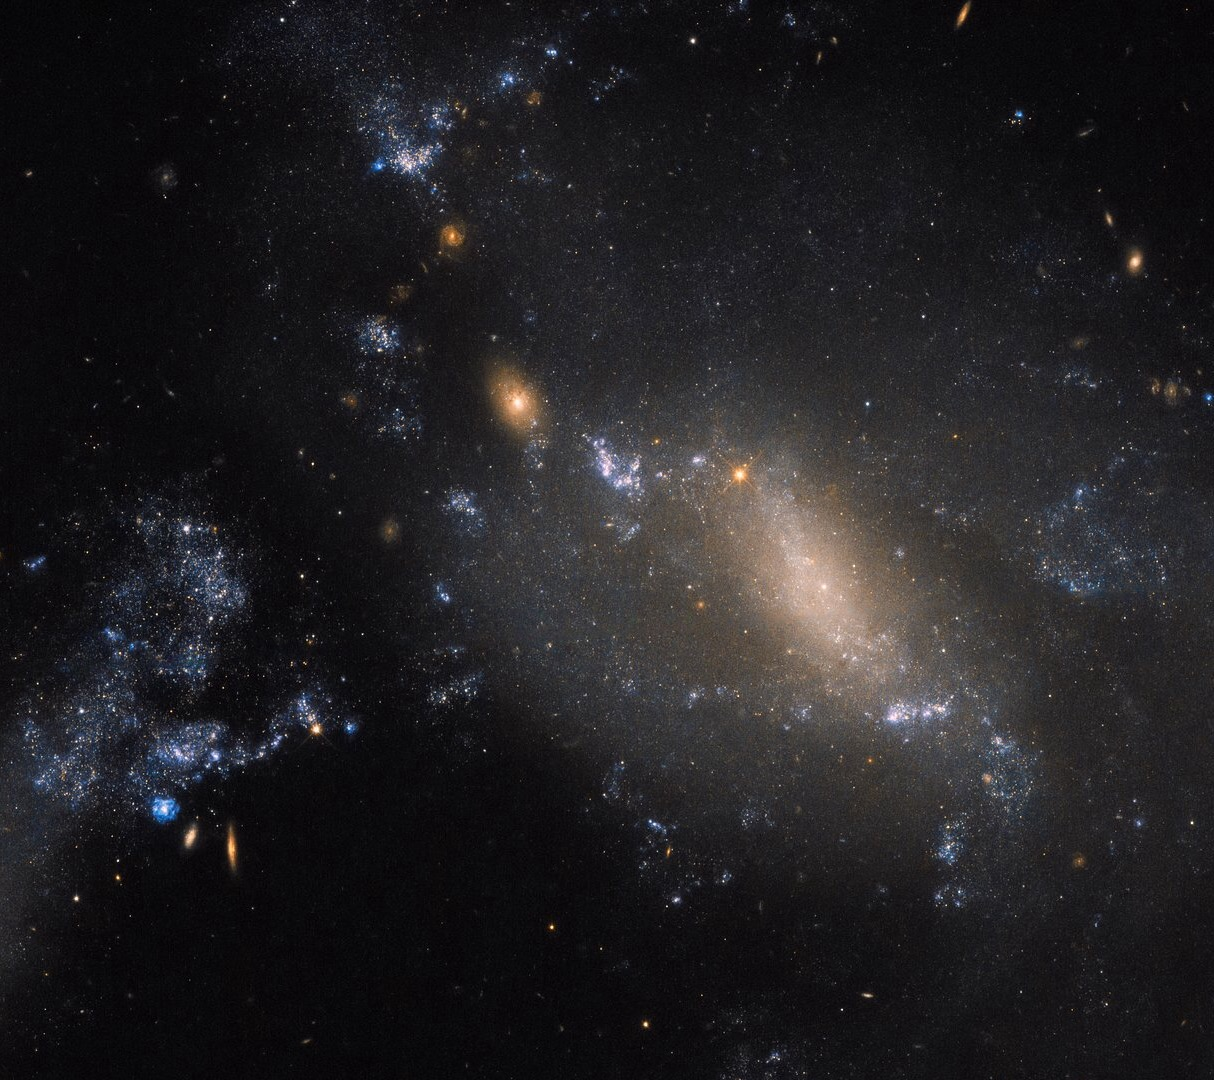 Some galaxies are harder to classify than others. Here, Hubble's trusty Wide Field Camera 3 (WFC3) has captured a striking view of two interacting galaxies located some 60 million light-years away in the constellation of Leo (The Lion). The more diffuse and patchy blue glow covering the right side of the frame is known as NGC 3447 — sometimes NGC 3447B for clarity, as the name NGC 3447 can apply to the overall duo. The smaller clump to the upper left is known as NGC 3447A. The trouble with space is that it is, to state the obvious, really, really big. Astronomers have for hundreds of years been discovering and naming galaxies, stars, cosmic clouds and more. Unifying and regulating the conventions and classifications for everything ever observed is very difficult, especially when you get an ambiguous object like NGC 3447, which stubbornly defies easy categorisation.  Overall, we know NGC 3447 comprises a couple of interacting galaxies, but we're unsure what each looked like before they began to tear one another apart. The two sit so close that they are strongly influenced and distorted by the gravitational forces between them, causing the galaxies to twist themselves into the unusual and unique shapes seen here. NGC 3447A appears to display the remnants of a central bar structure and some disrupted spiral arms, both properties characteristic of certain spiral galaxies. Some identify NGC 3447B as a former spiral galaxy, while others categorise it as being an irregular galaxy.